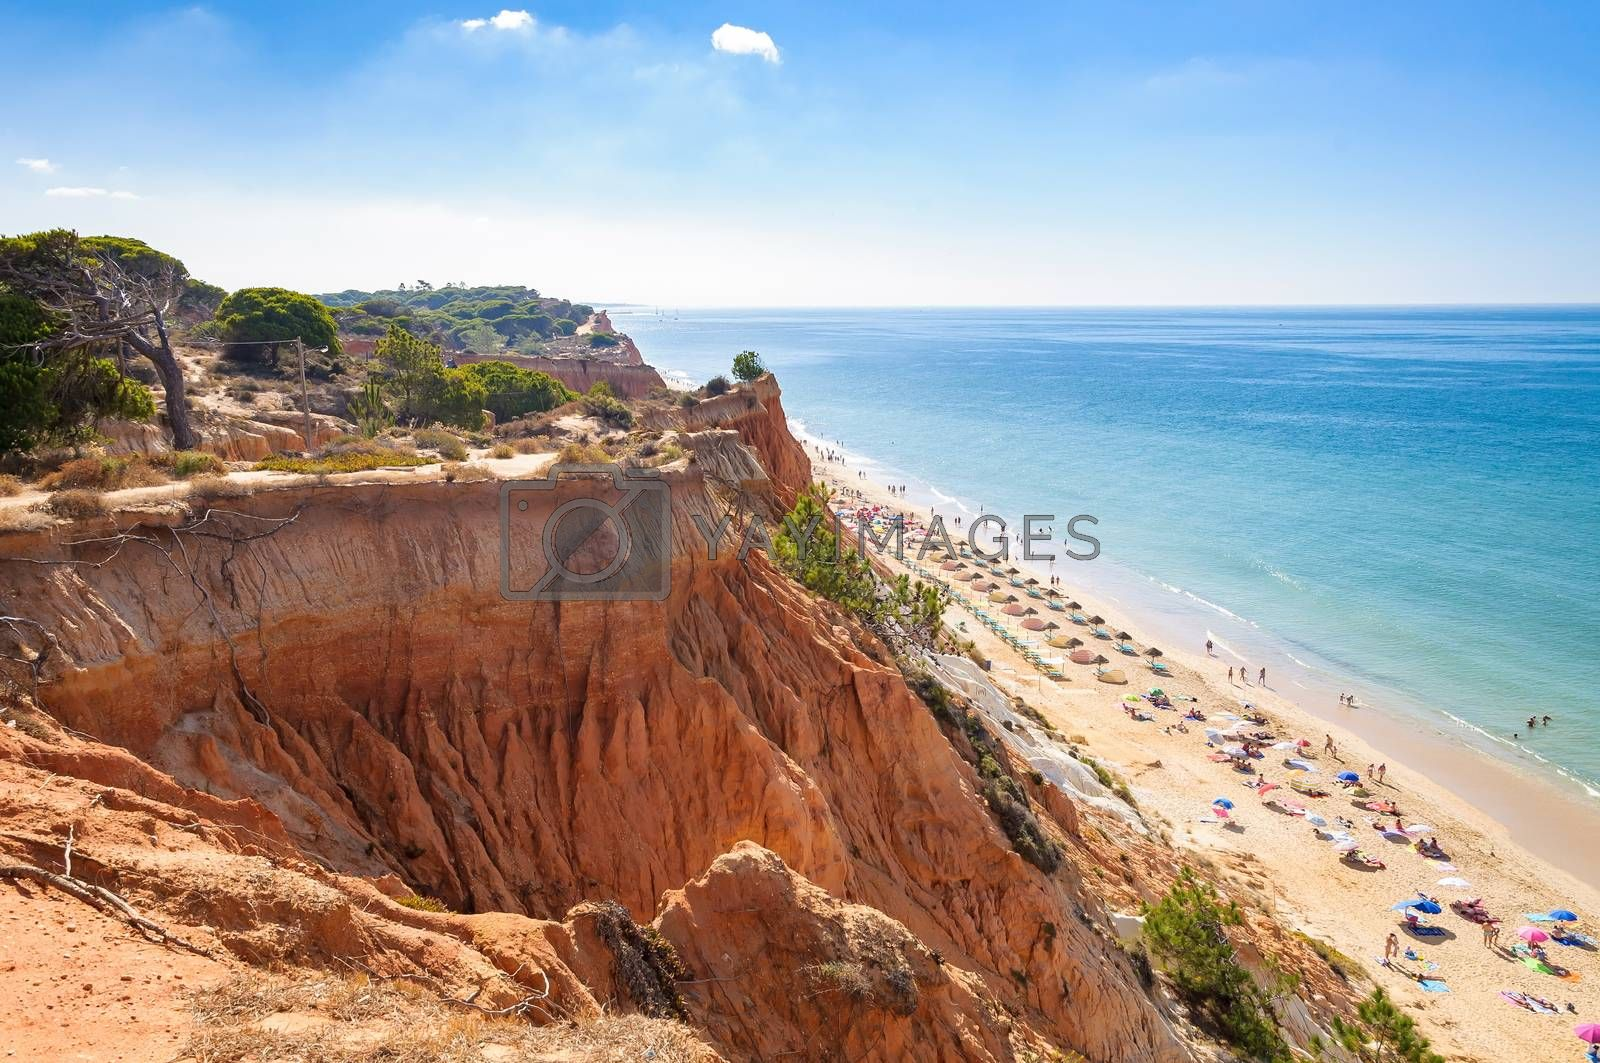 Royalty free image of Falesia Beach seen from the cliff by mkos83